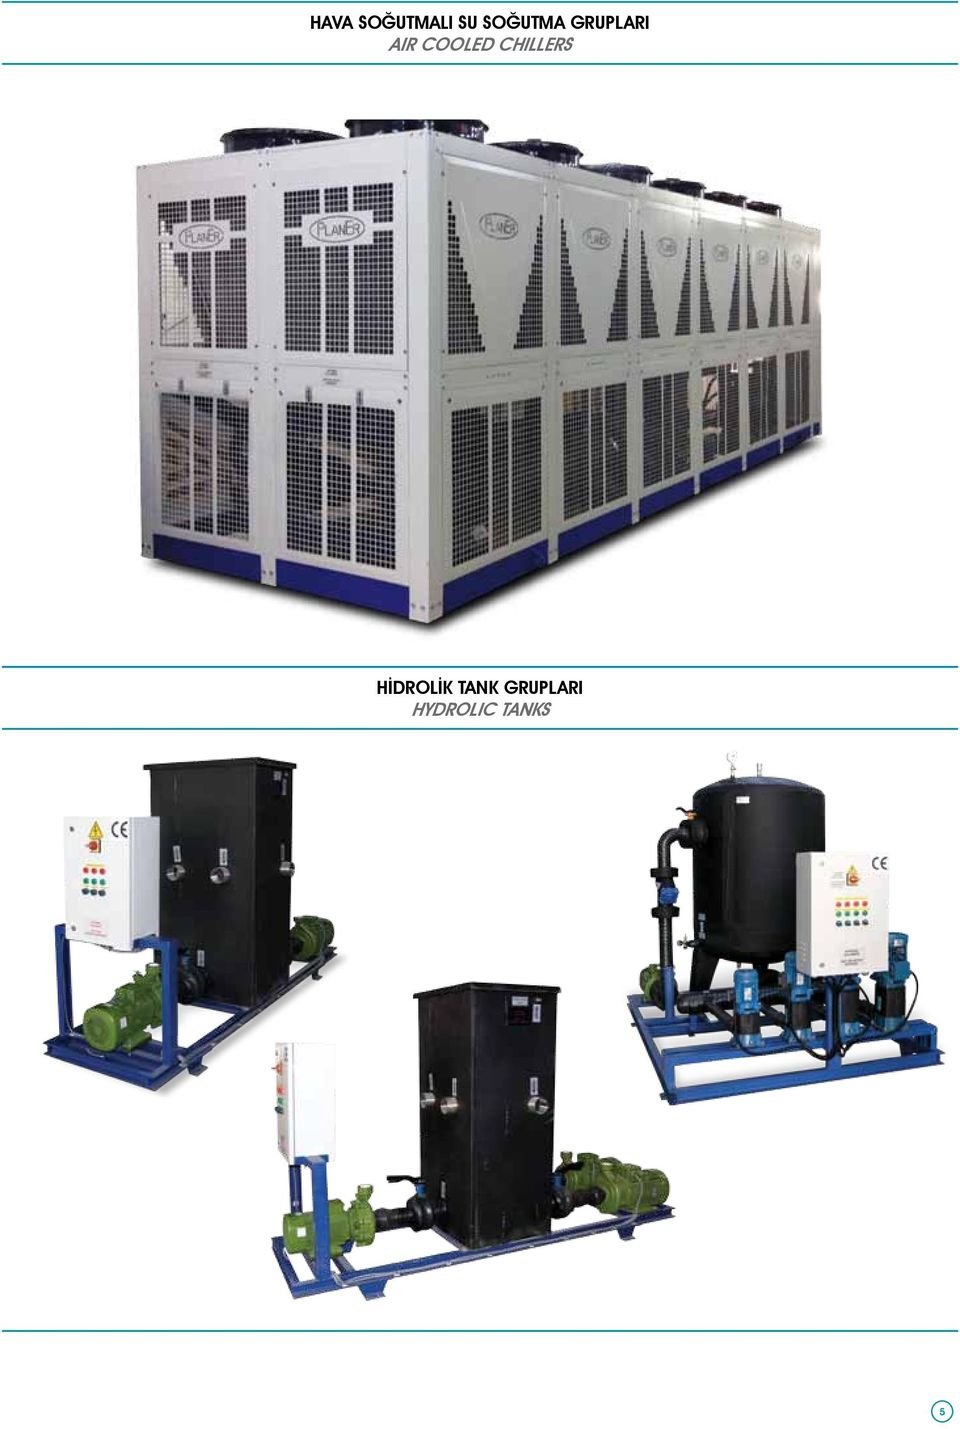 COOLED CHILLERS